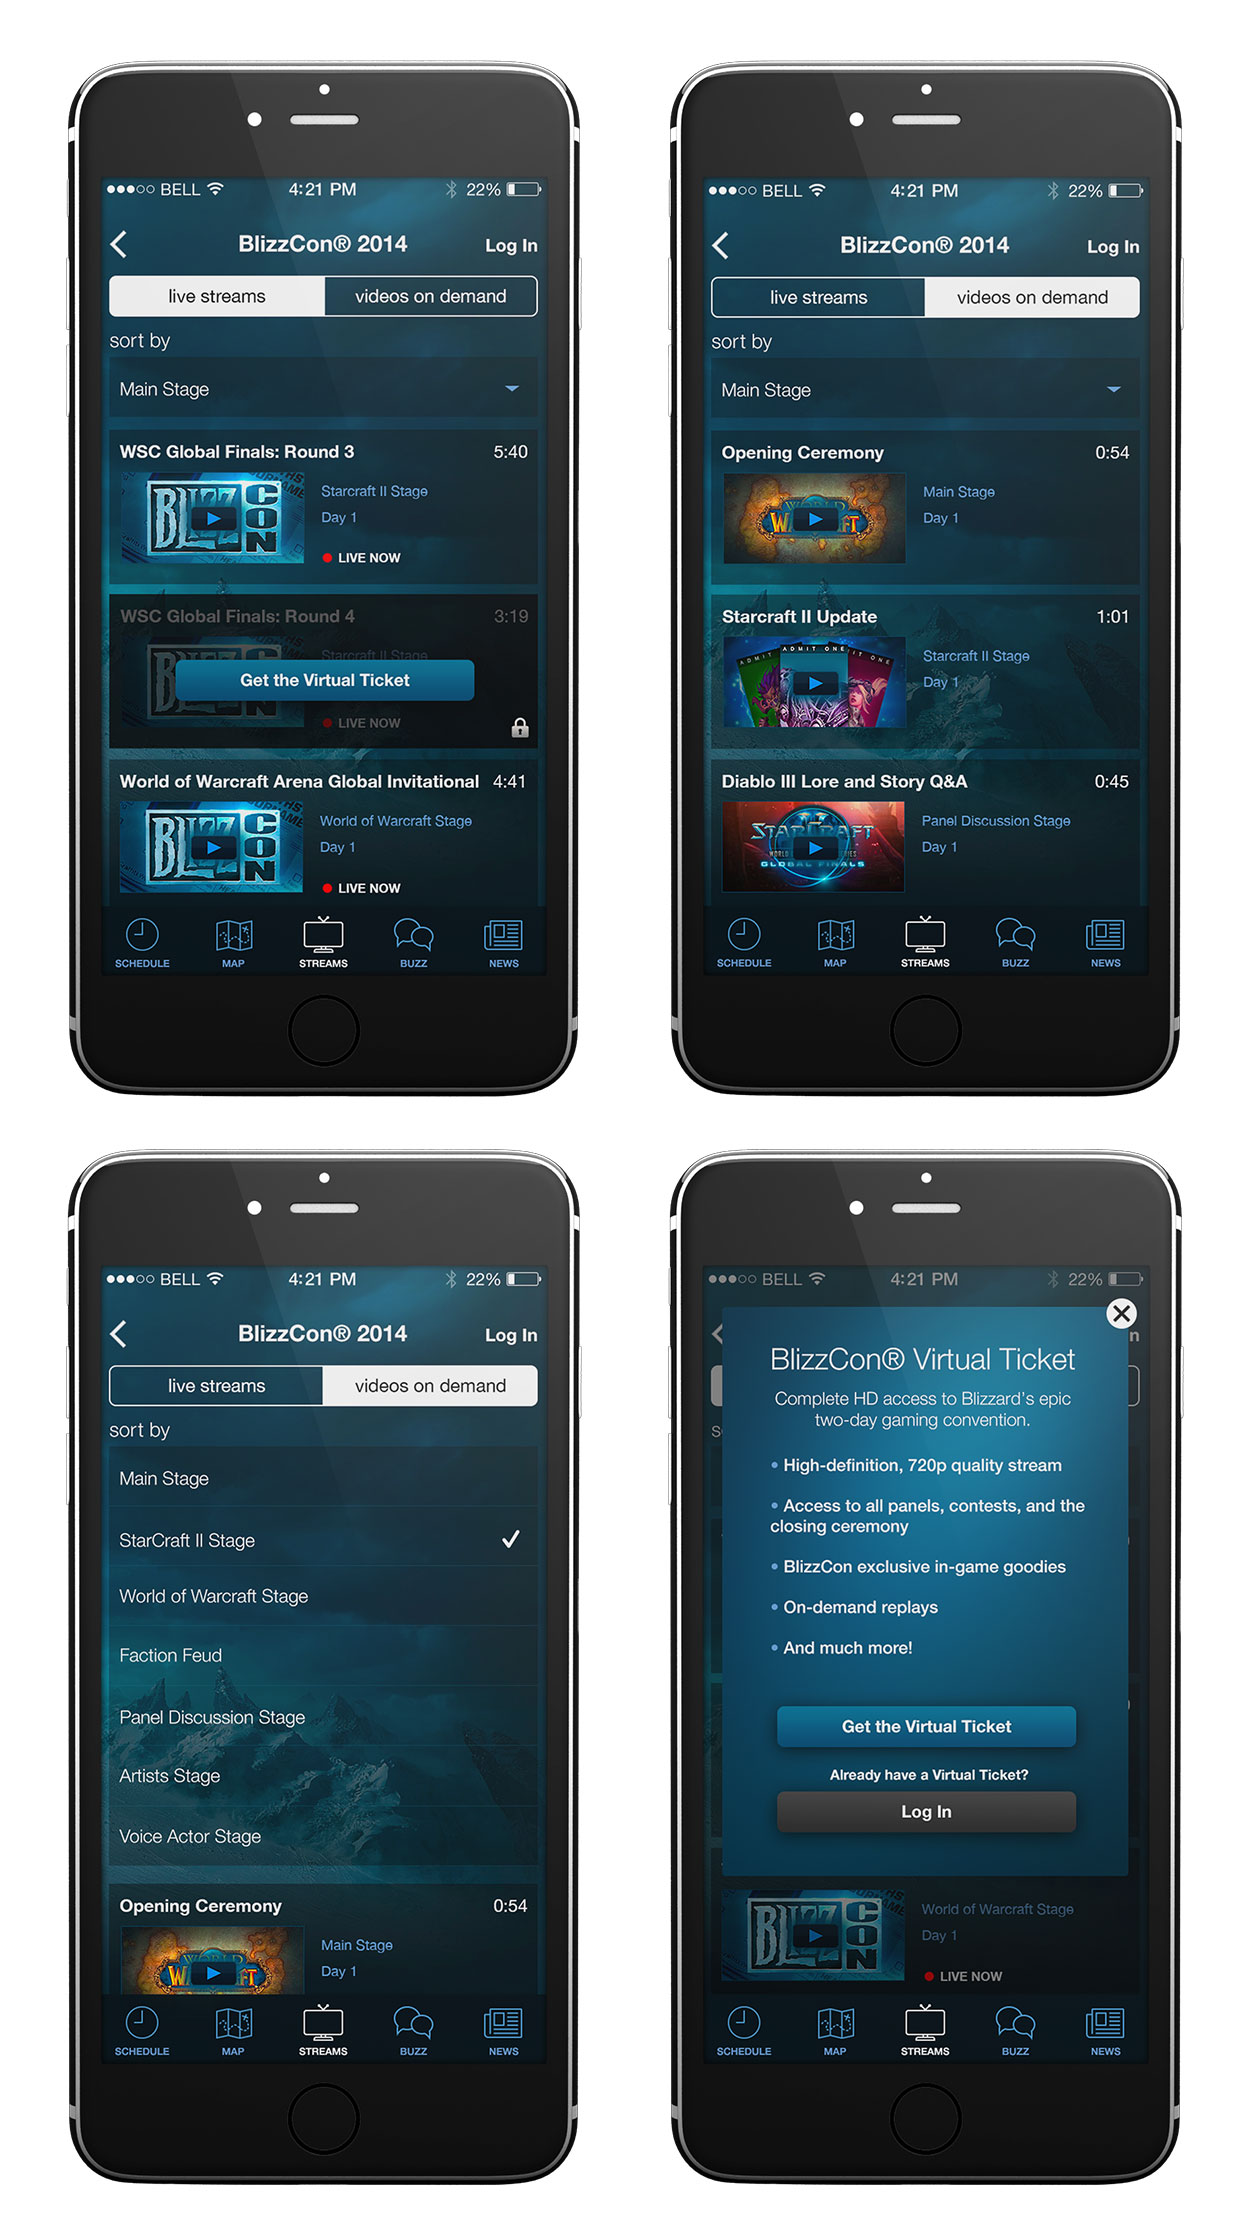 BlizzCon 2014 Live Streams & Videos Mobile Section